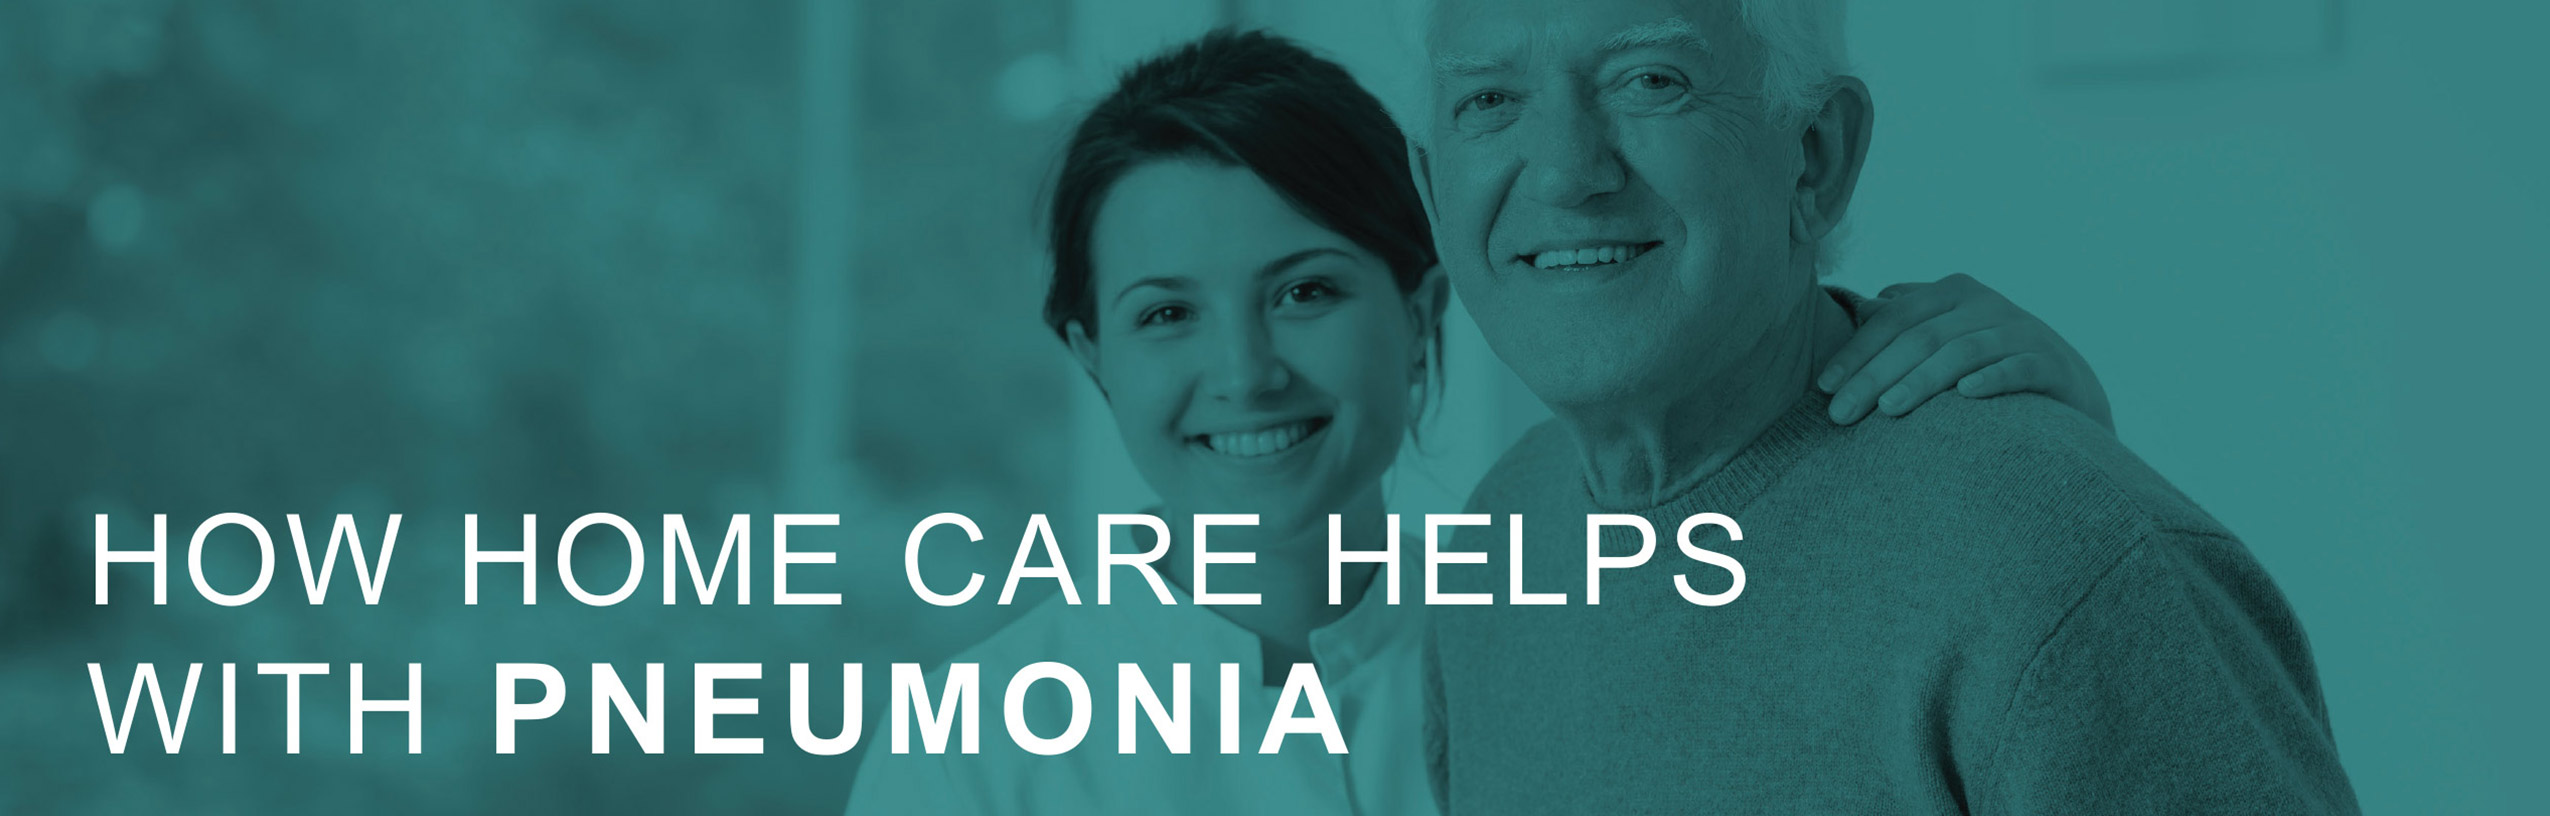 Helpful Home Care info about pneumonia